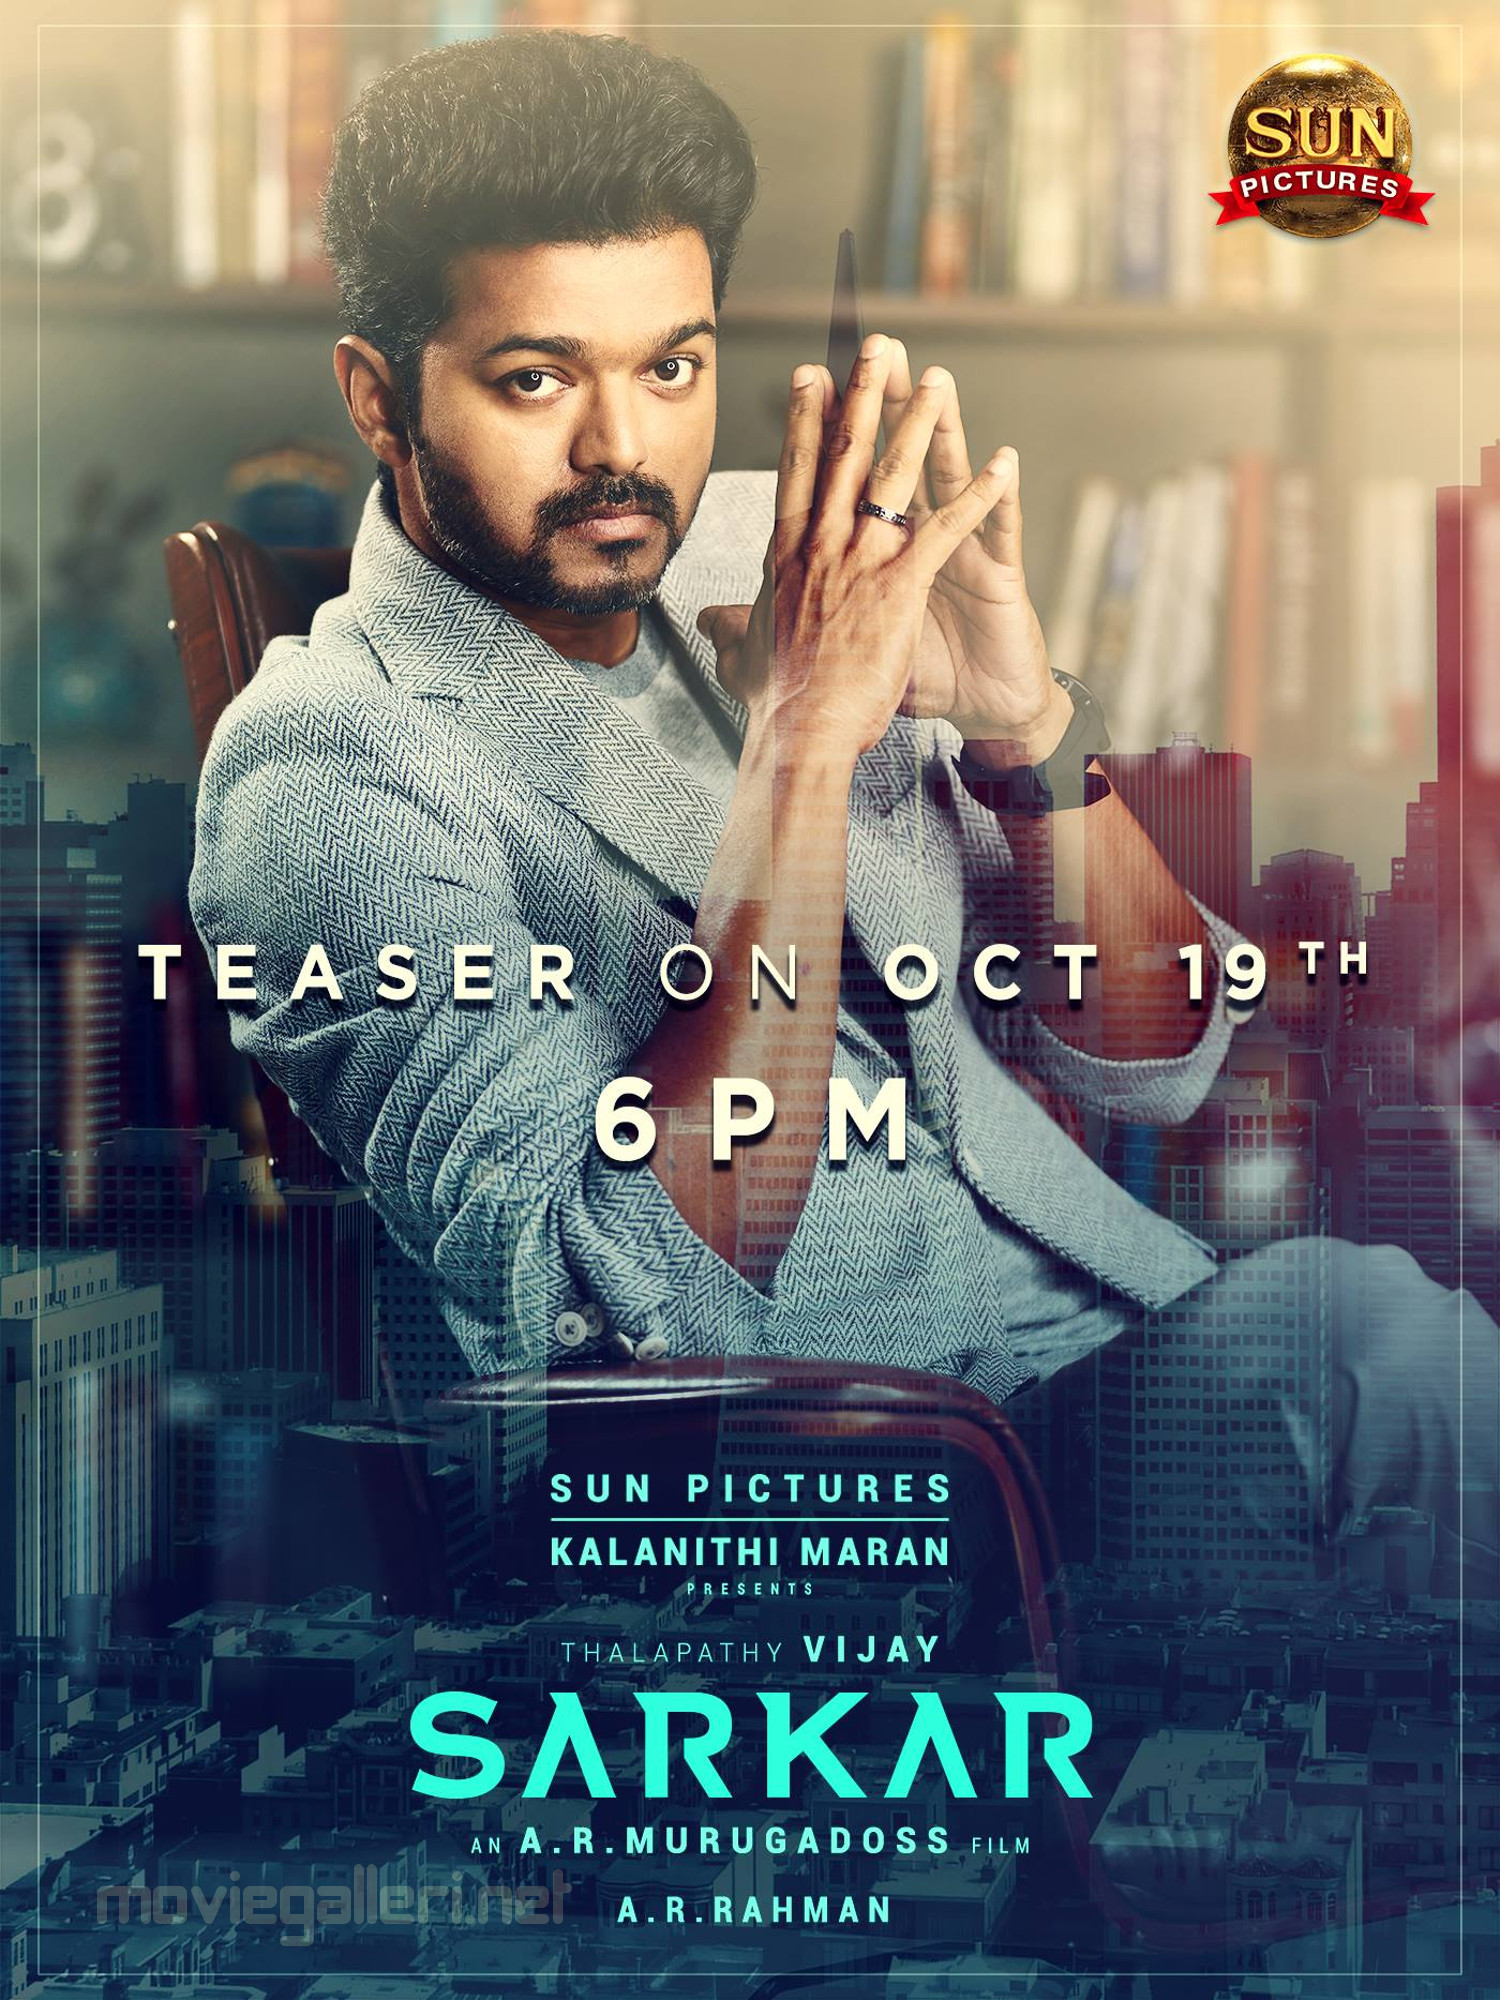 Actor Vijay Sarkar Teaser Release Date on 19 October Poster HD